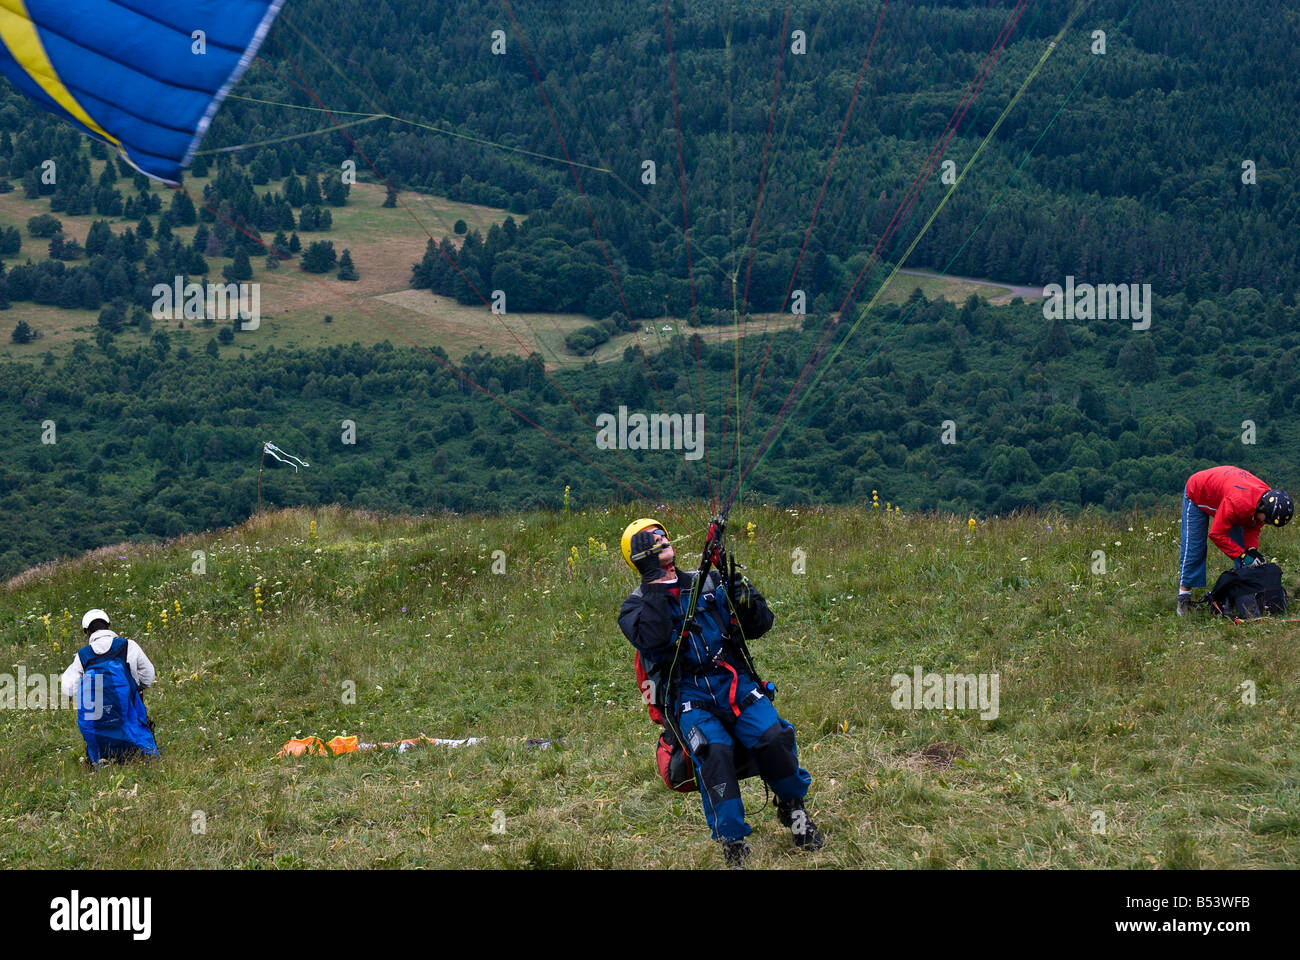 Paragliders on Le Puy de Dome, France Stock Photo